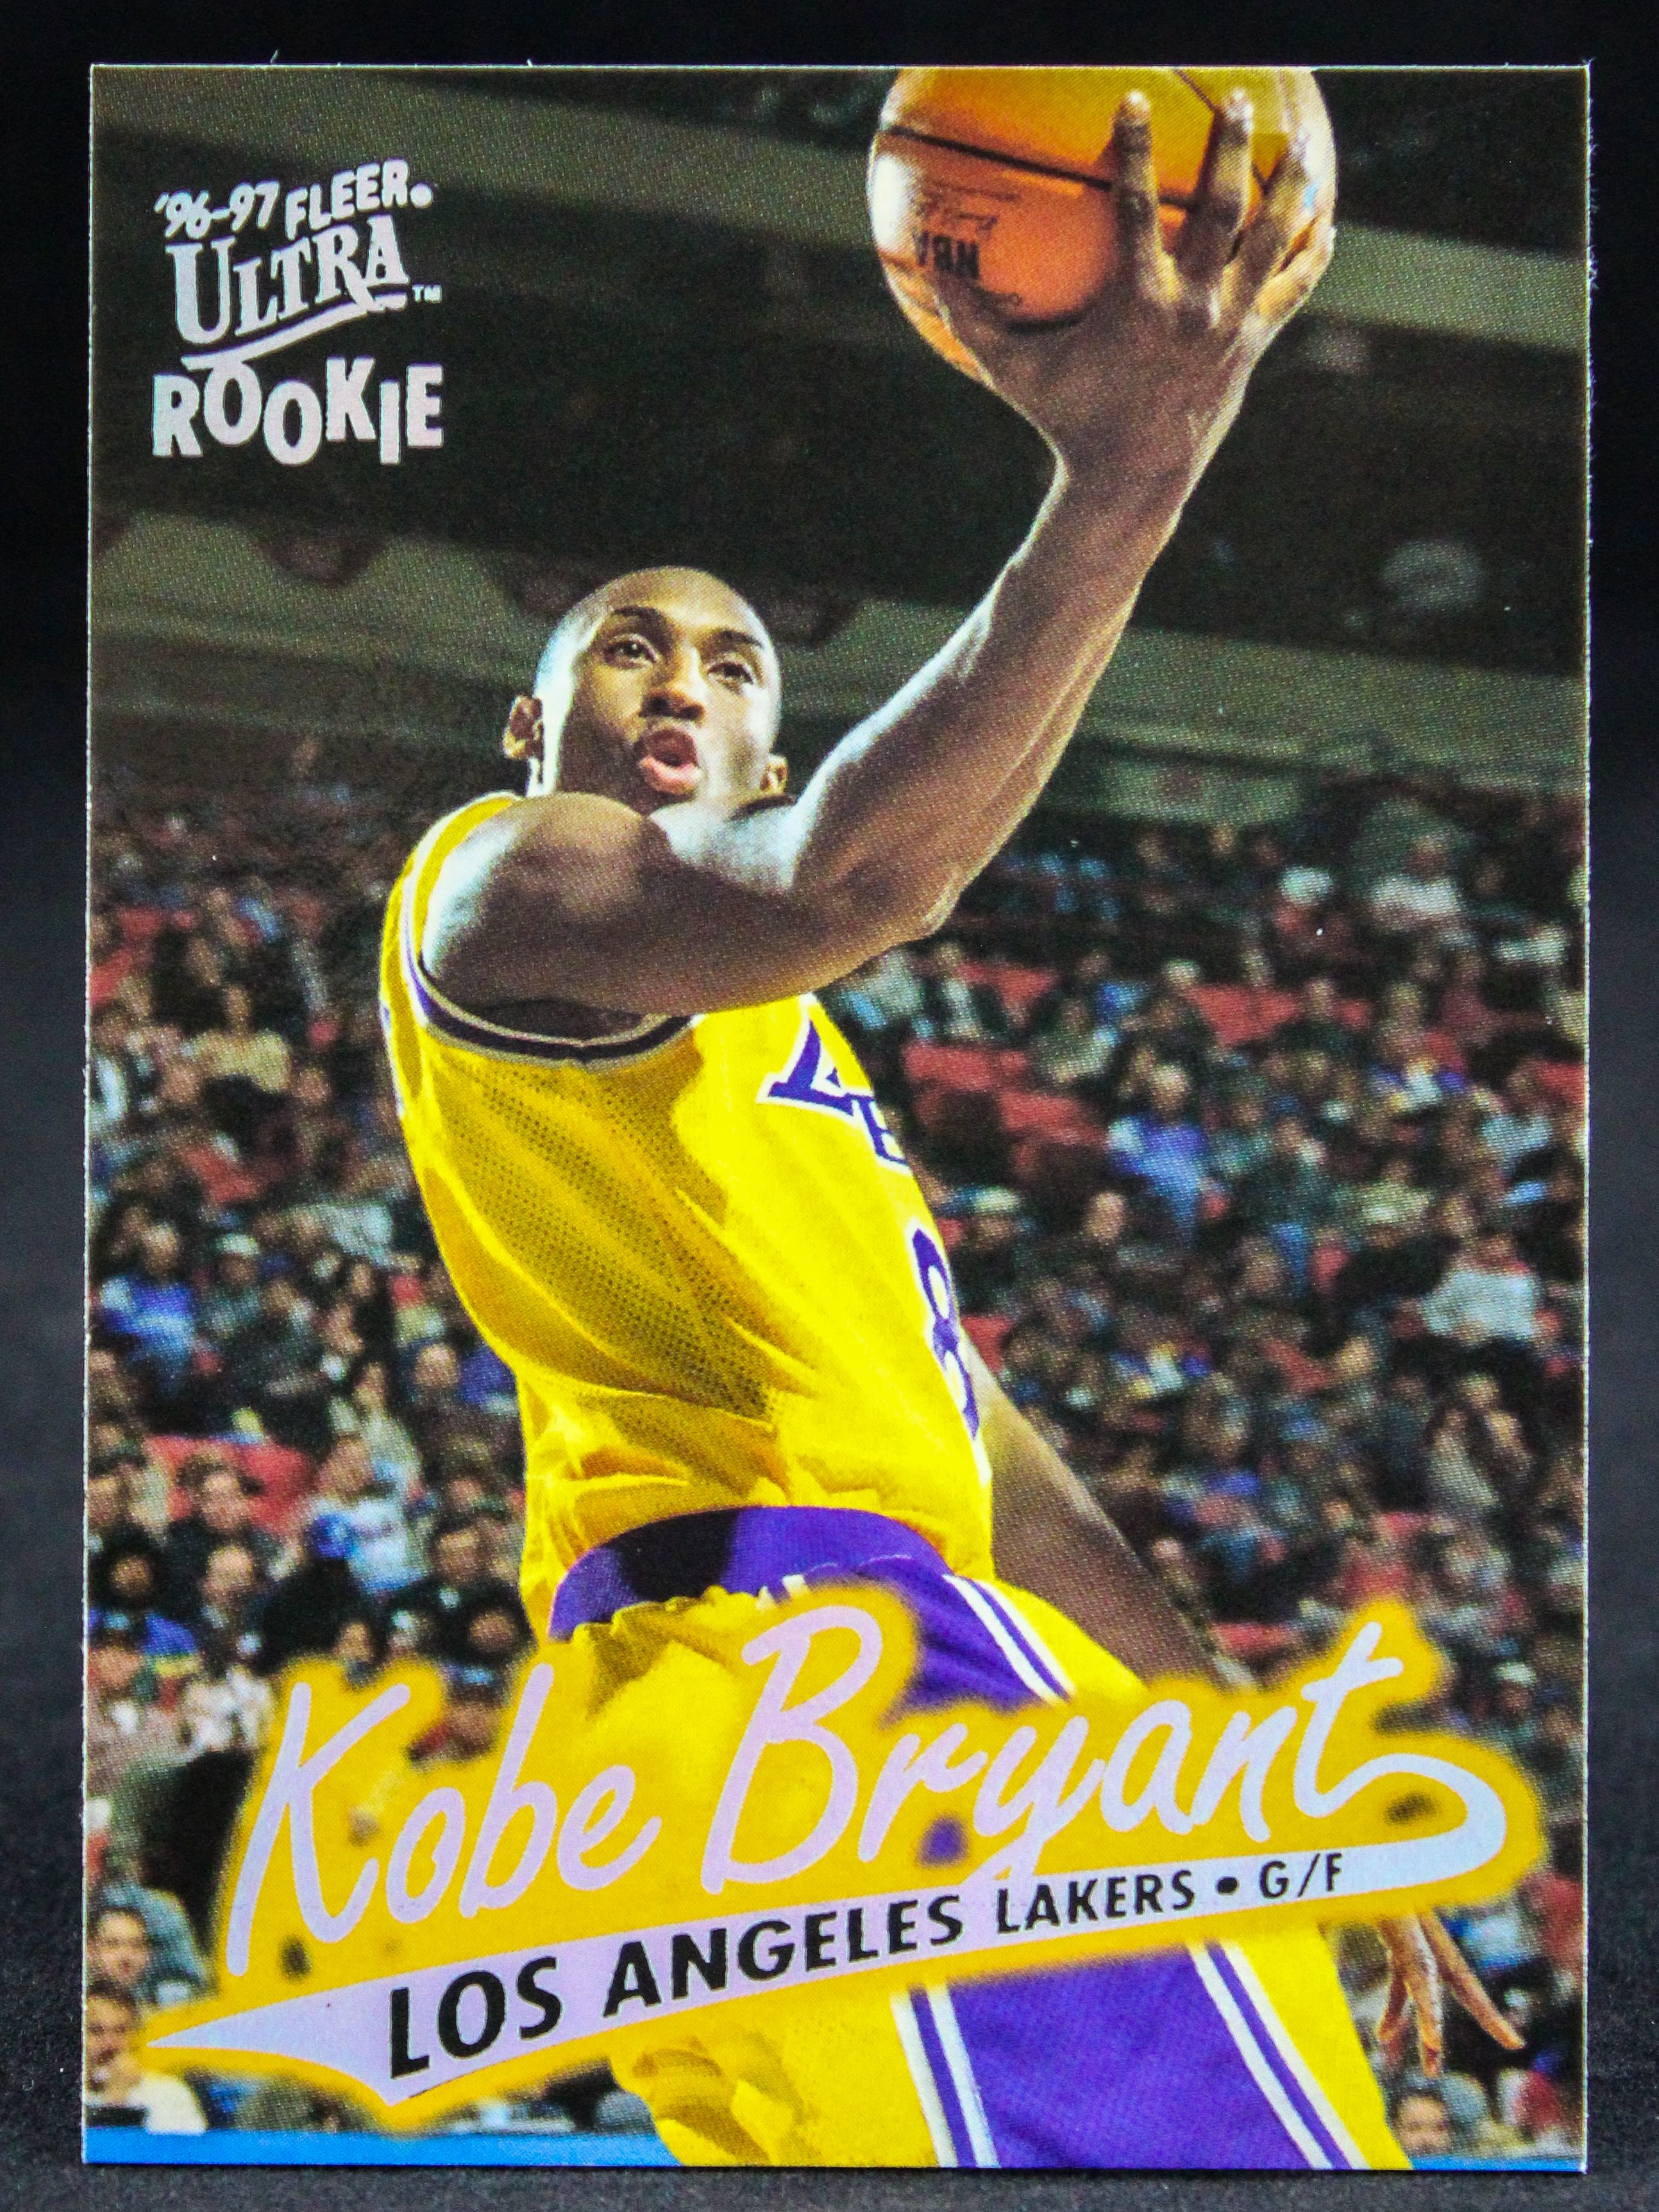 Kobe bryant 199697 fleer ultra rc by duval sports cards